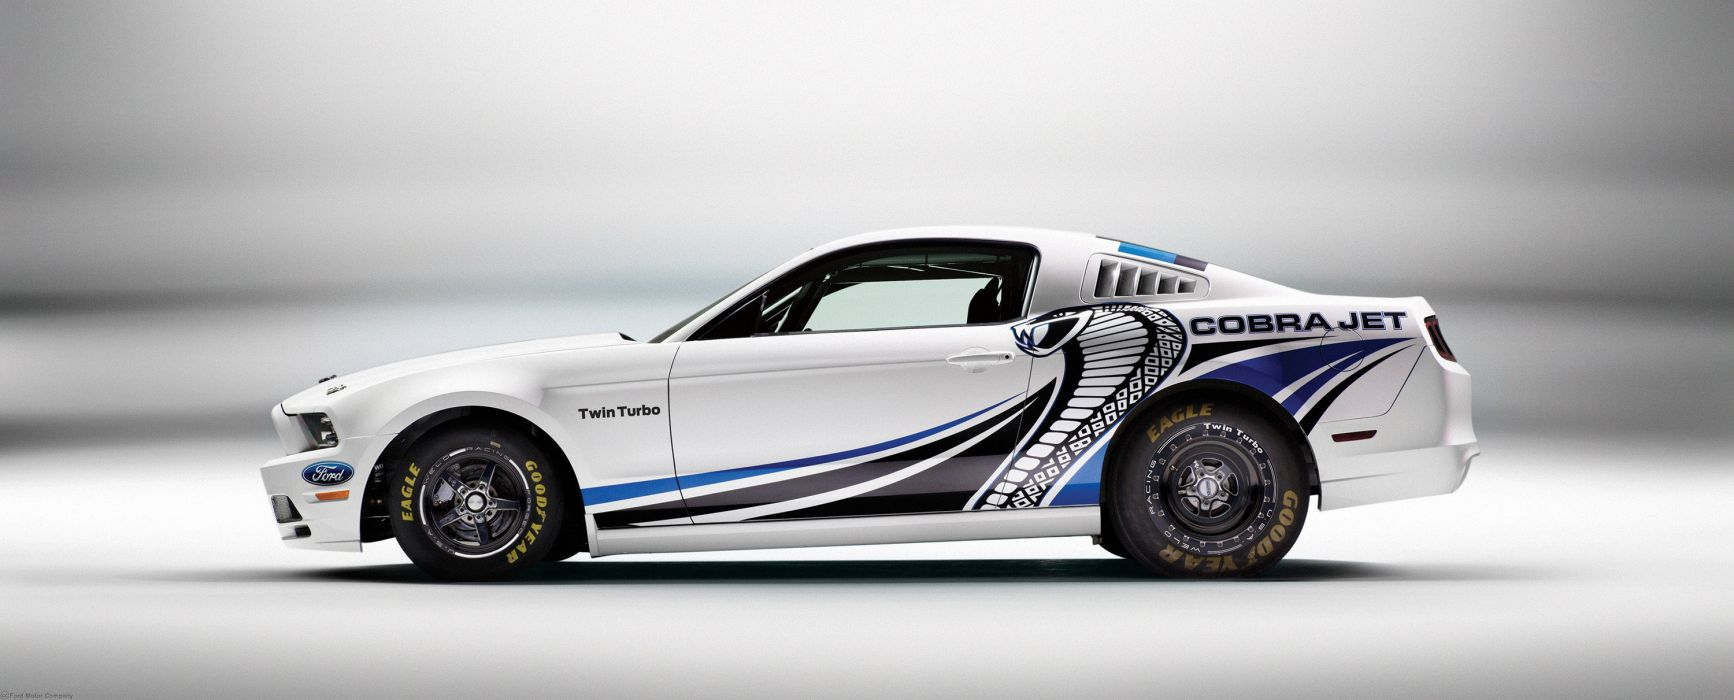 2013 Ford Mustang Cobra Jet Twin-Turbo Concept race racing hot rod rods muscle a wallpaper